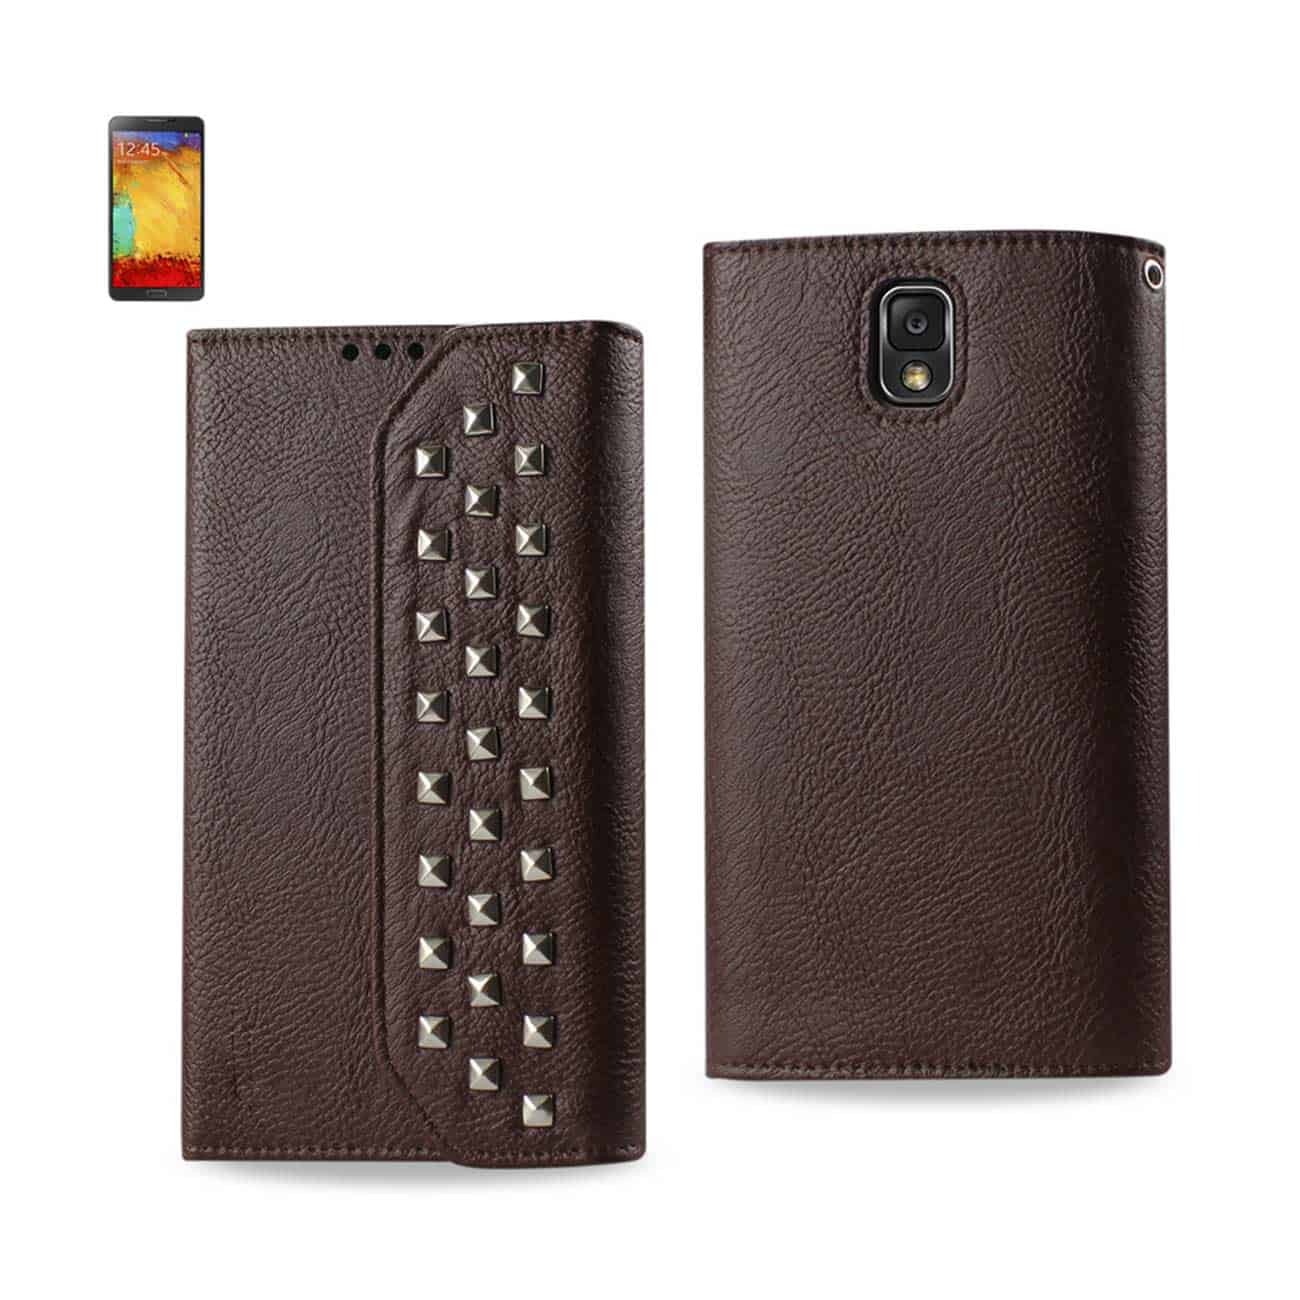 SAMSUNG GALAXY NOTE 3 STUDS WALLET CASE IN BROWN